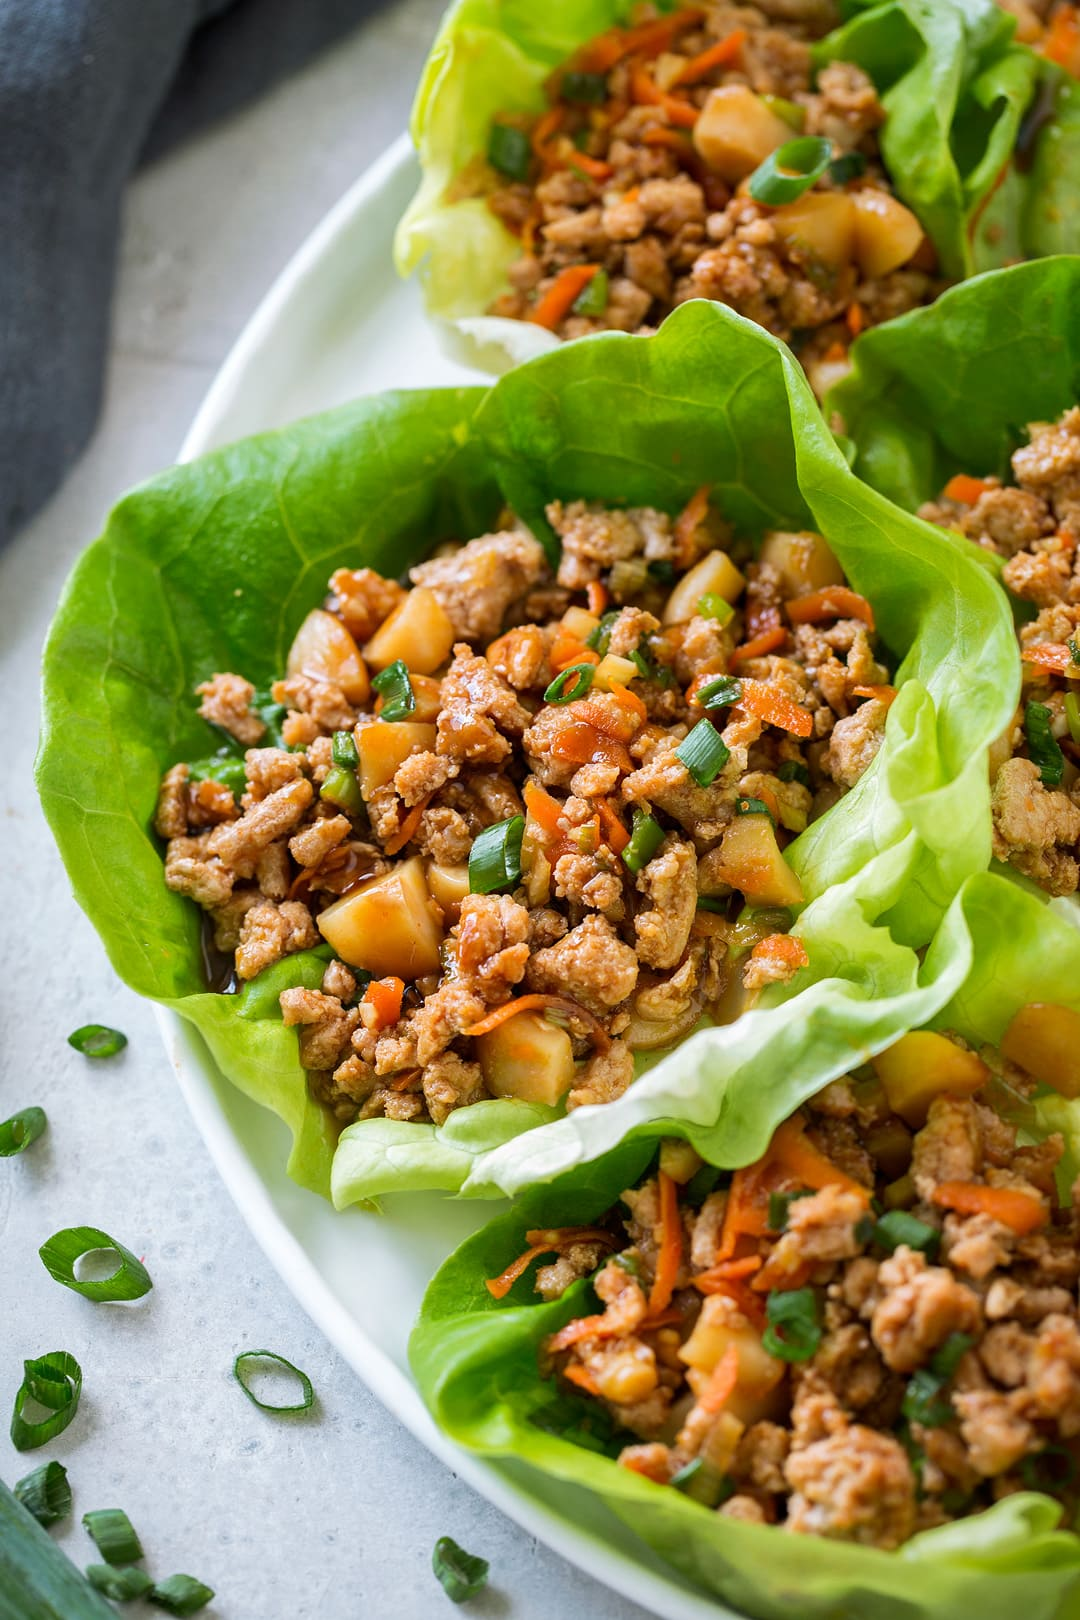 For the Love of Lettuce Recipes that Cut Out The Extra Calories